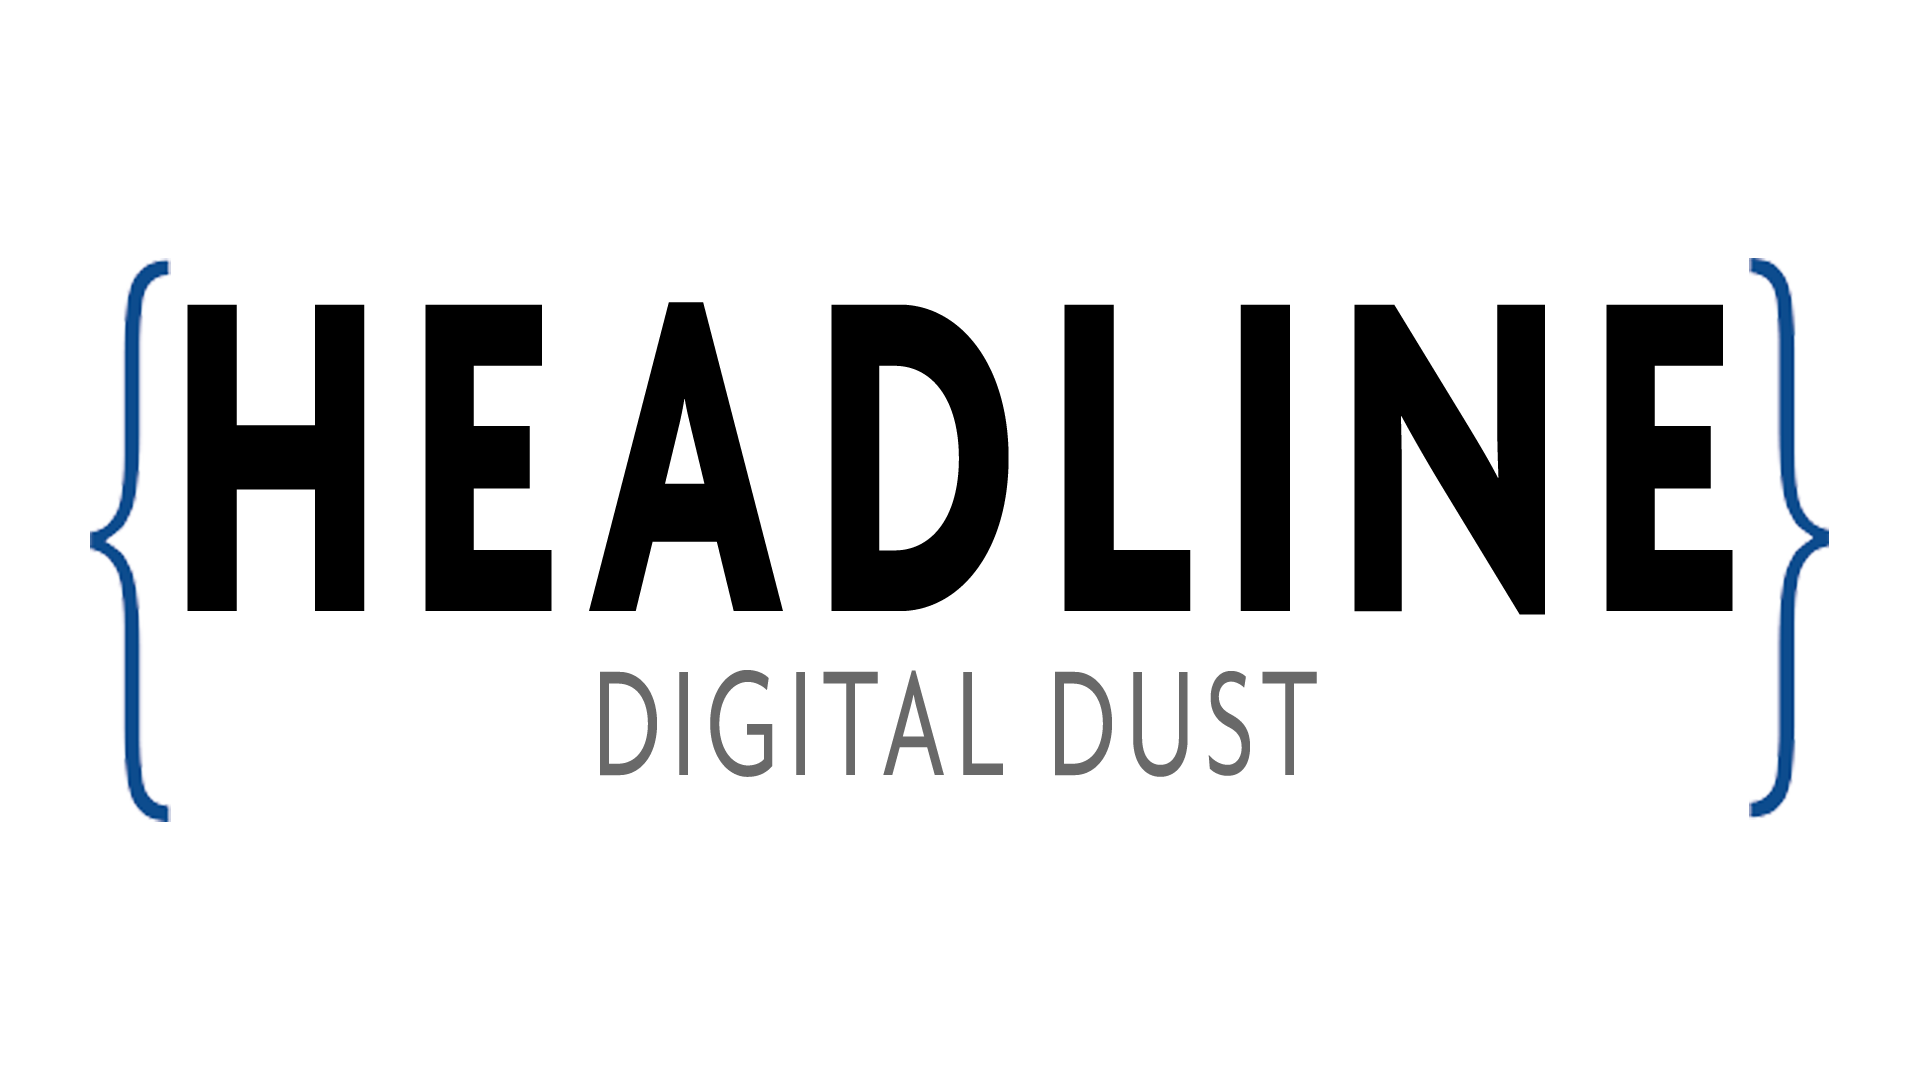 The word HEADLINE in all caps with the words DIGITAL DUST below in all caps